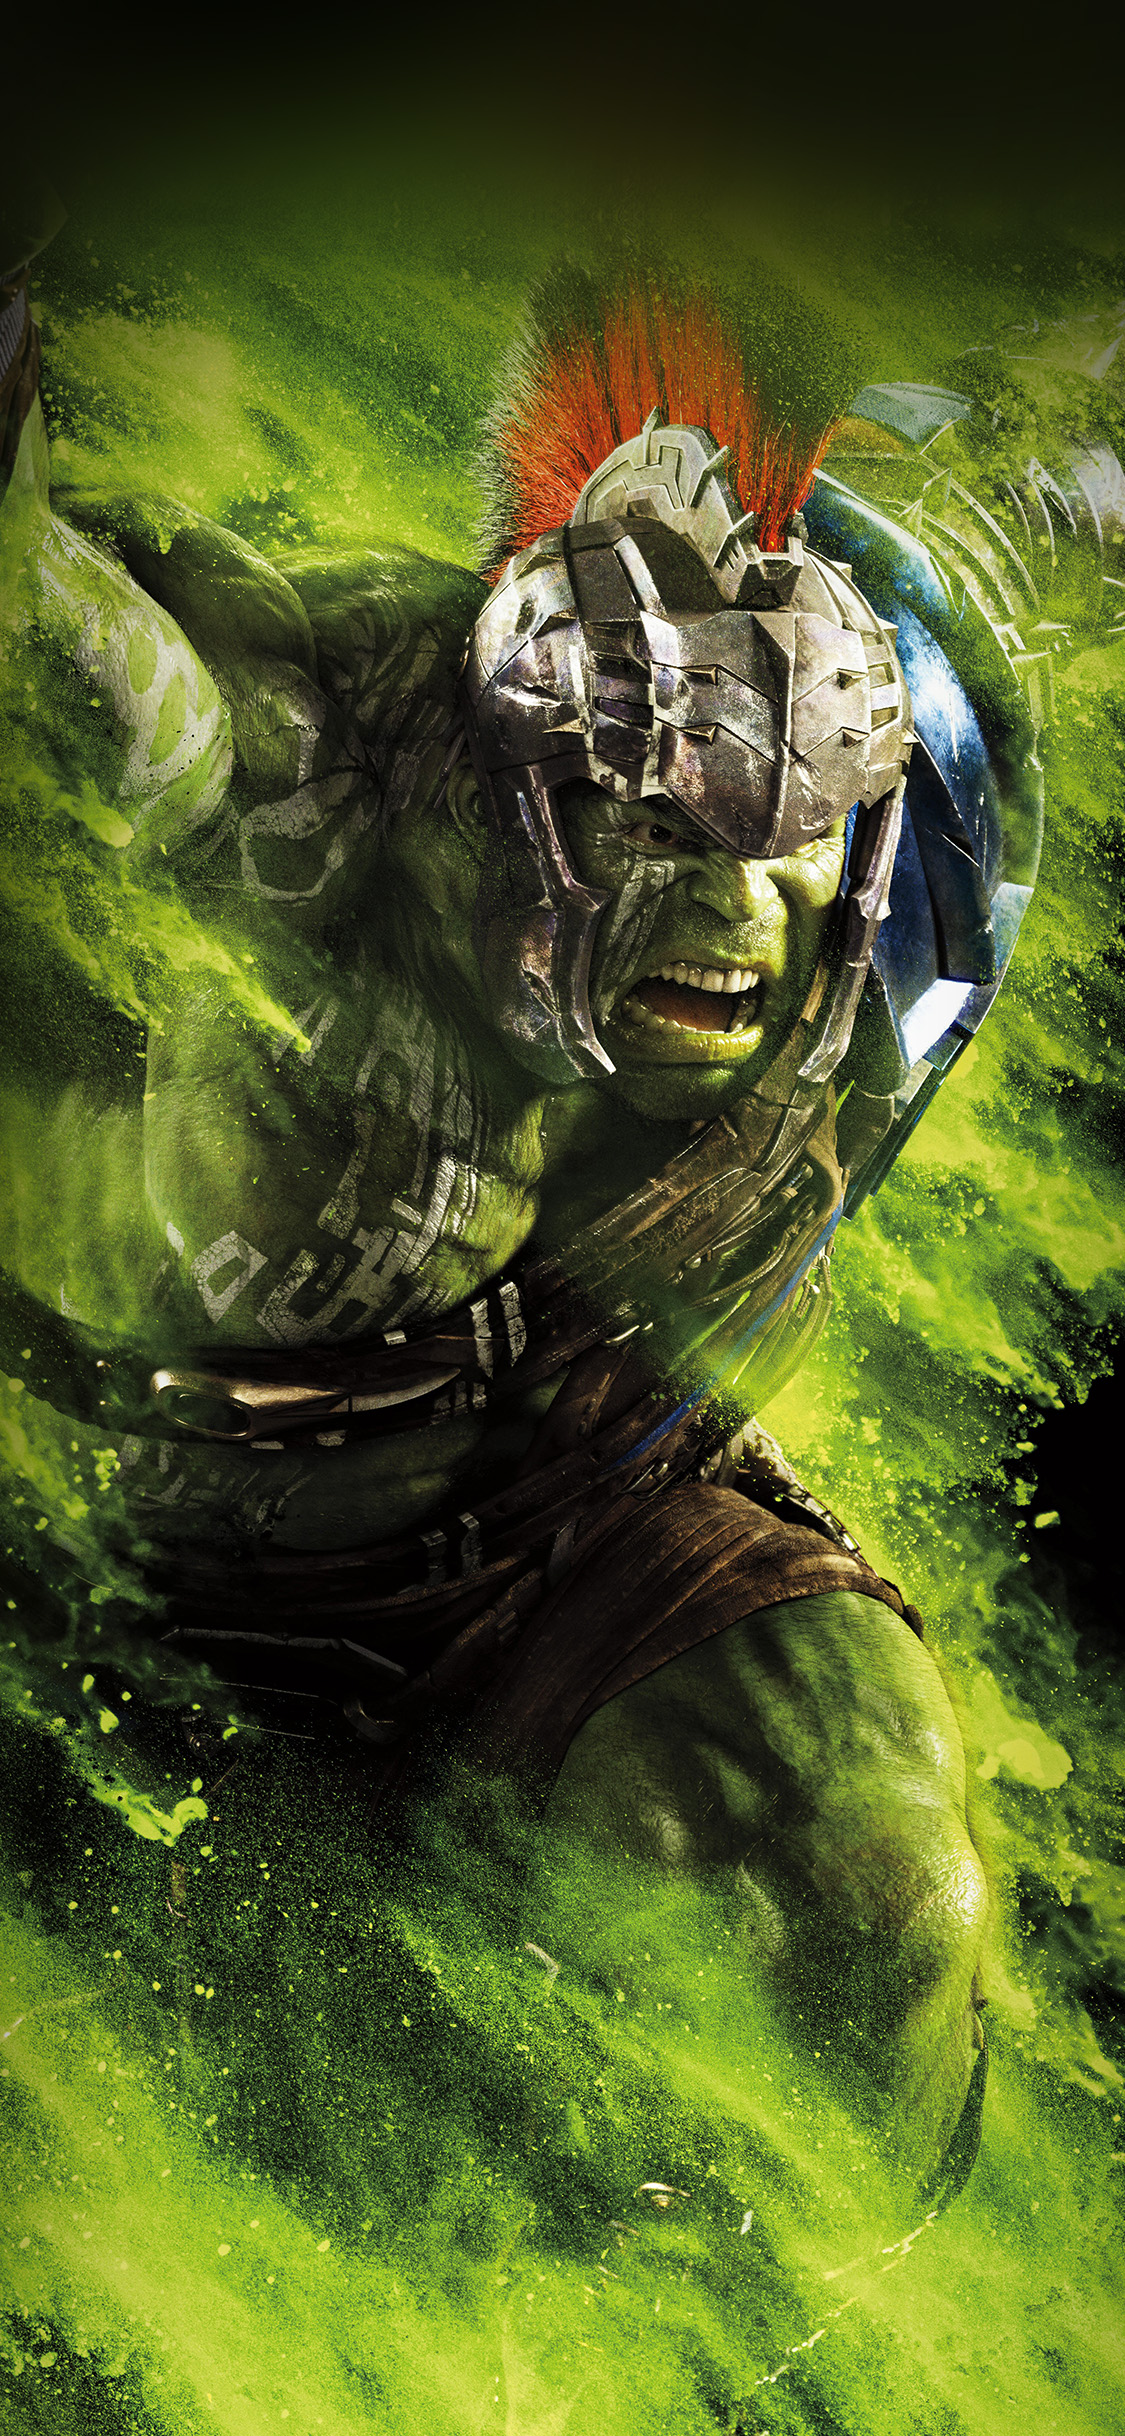 iPhonexpapers.com-Apple-iPhone-wallpaper-be57-hulk-ragnarok-red-film-marvel-hero-art-illustration